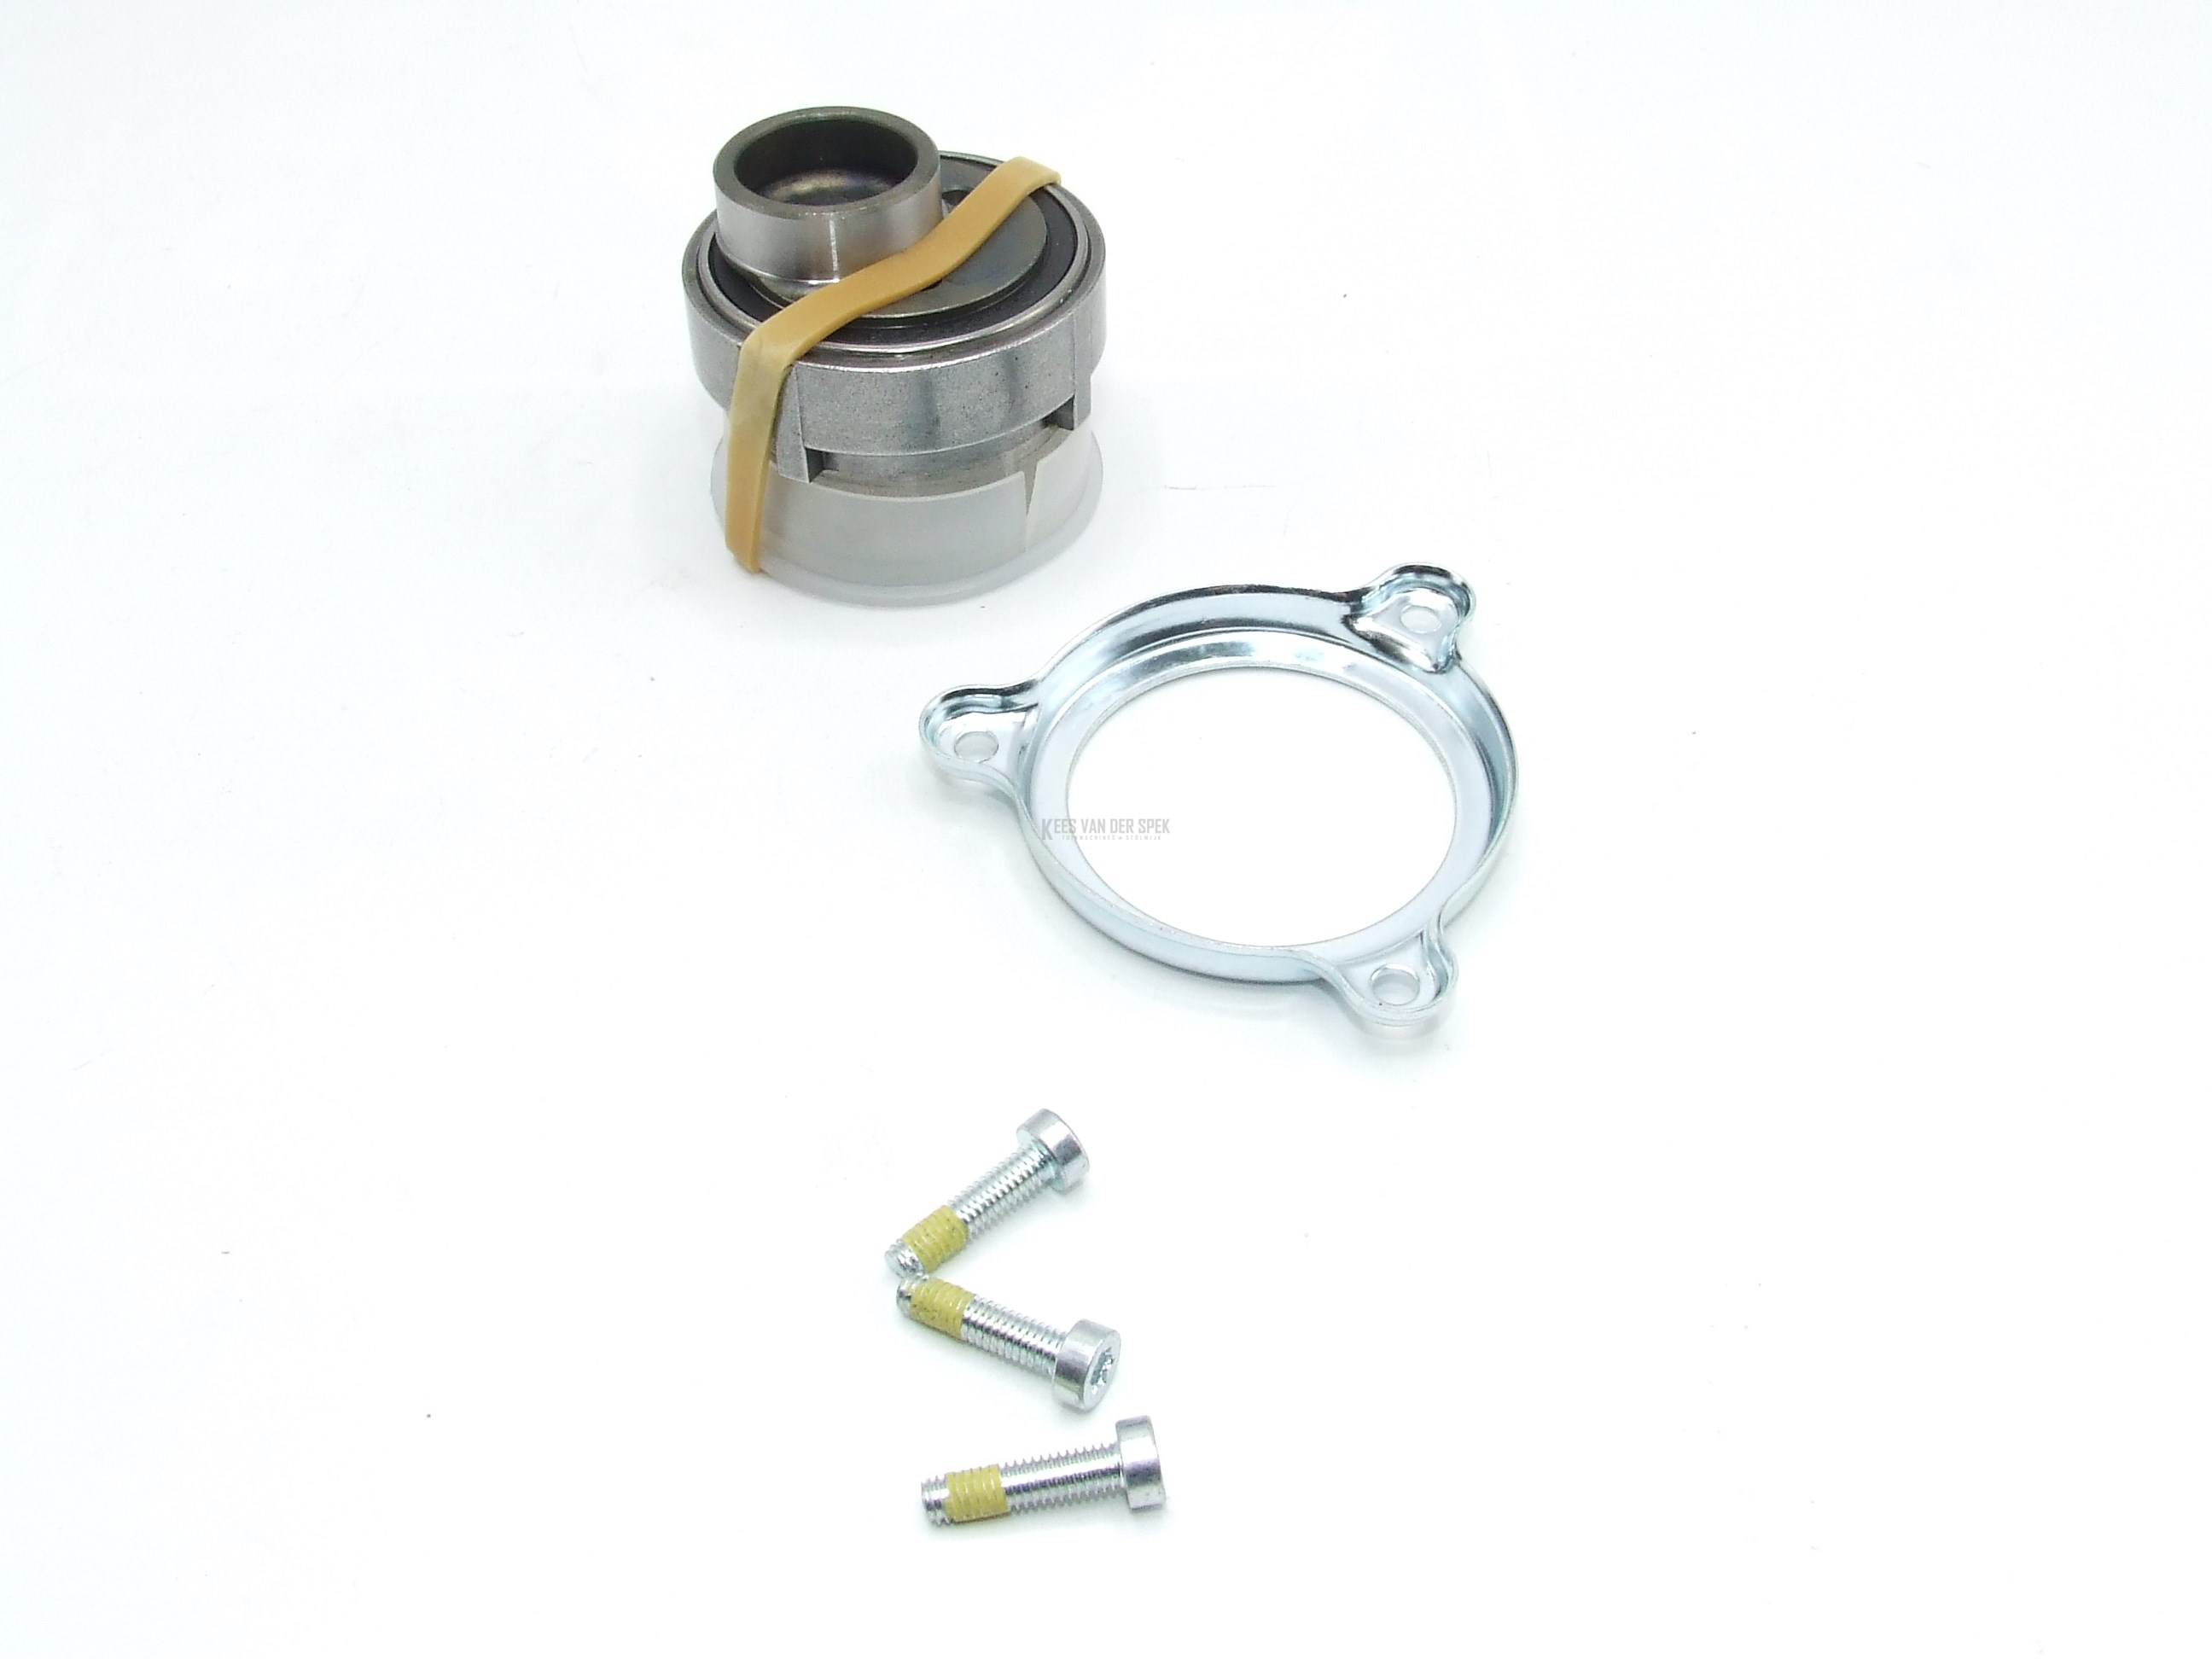 Reduction gearbox cultivion (kit c)